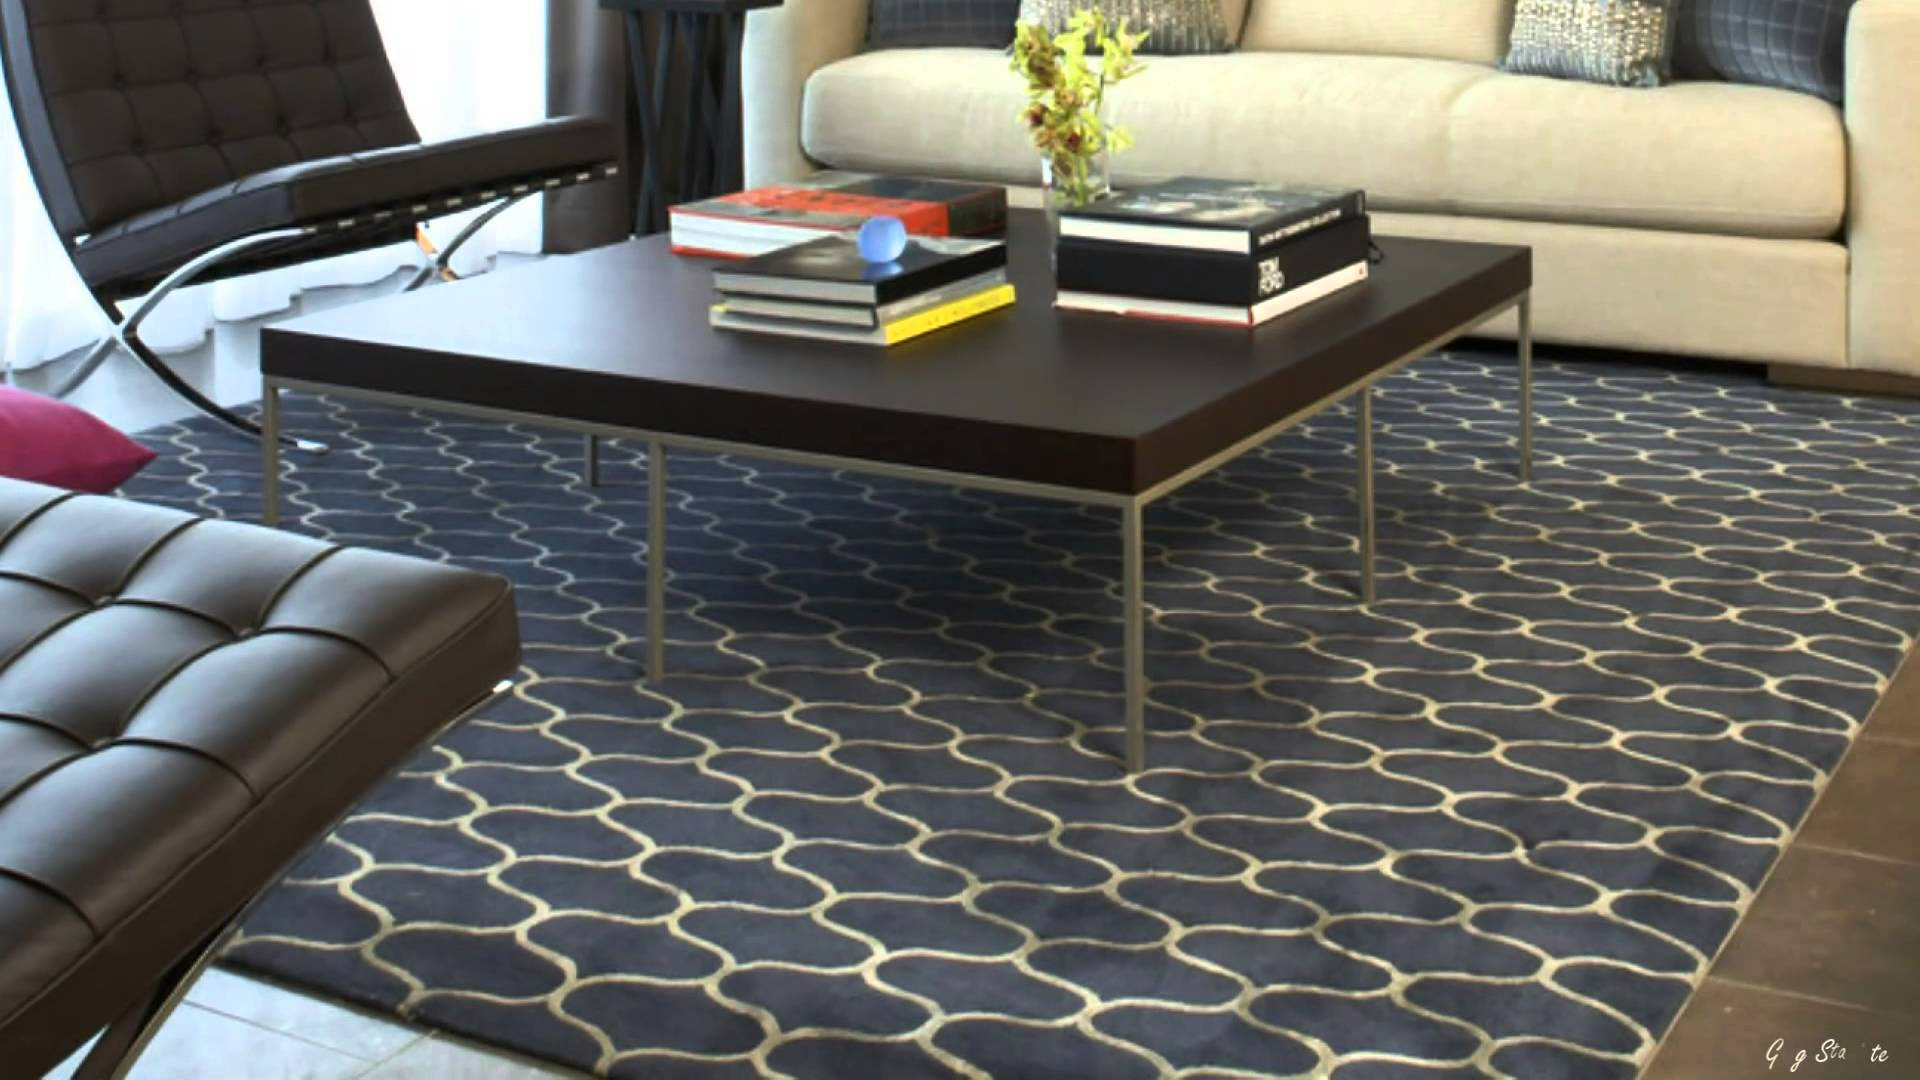 carpet designs for living room patterned carpet - living room design ideas - youtube NXJWGLD